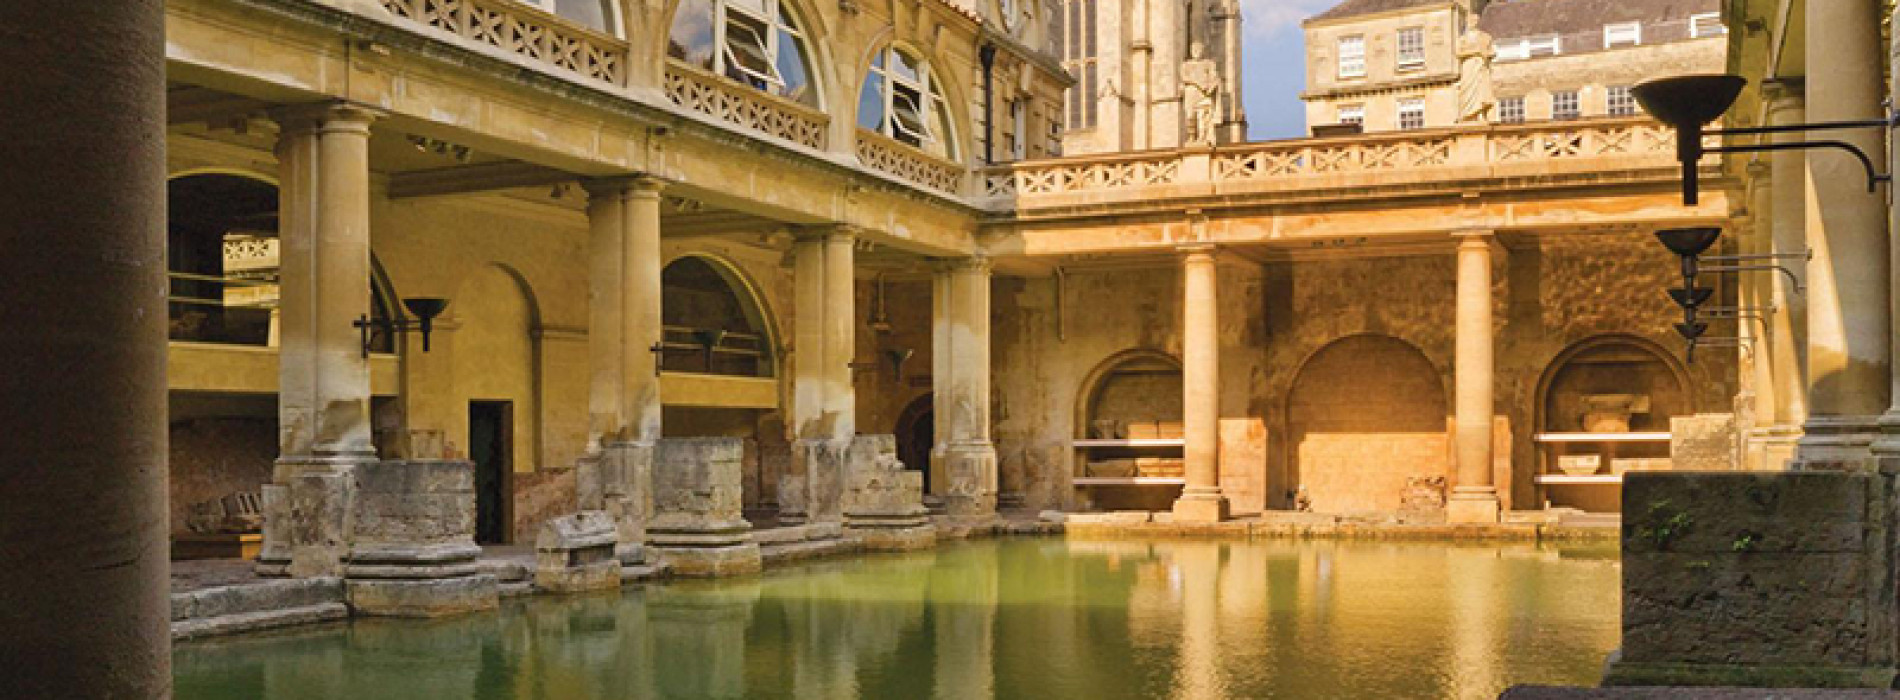 Access All Areas: Roman Baths | Disability Horizons